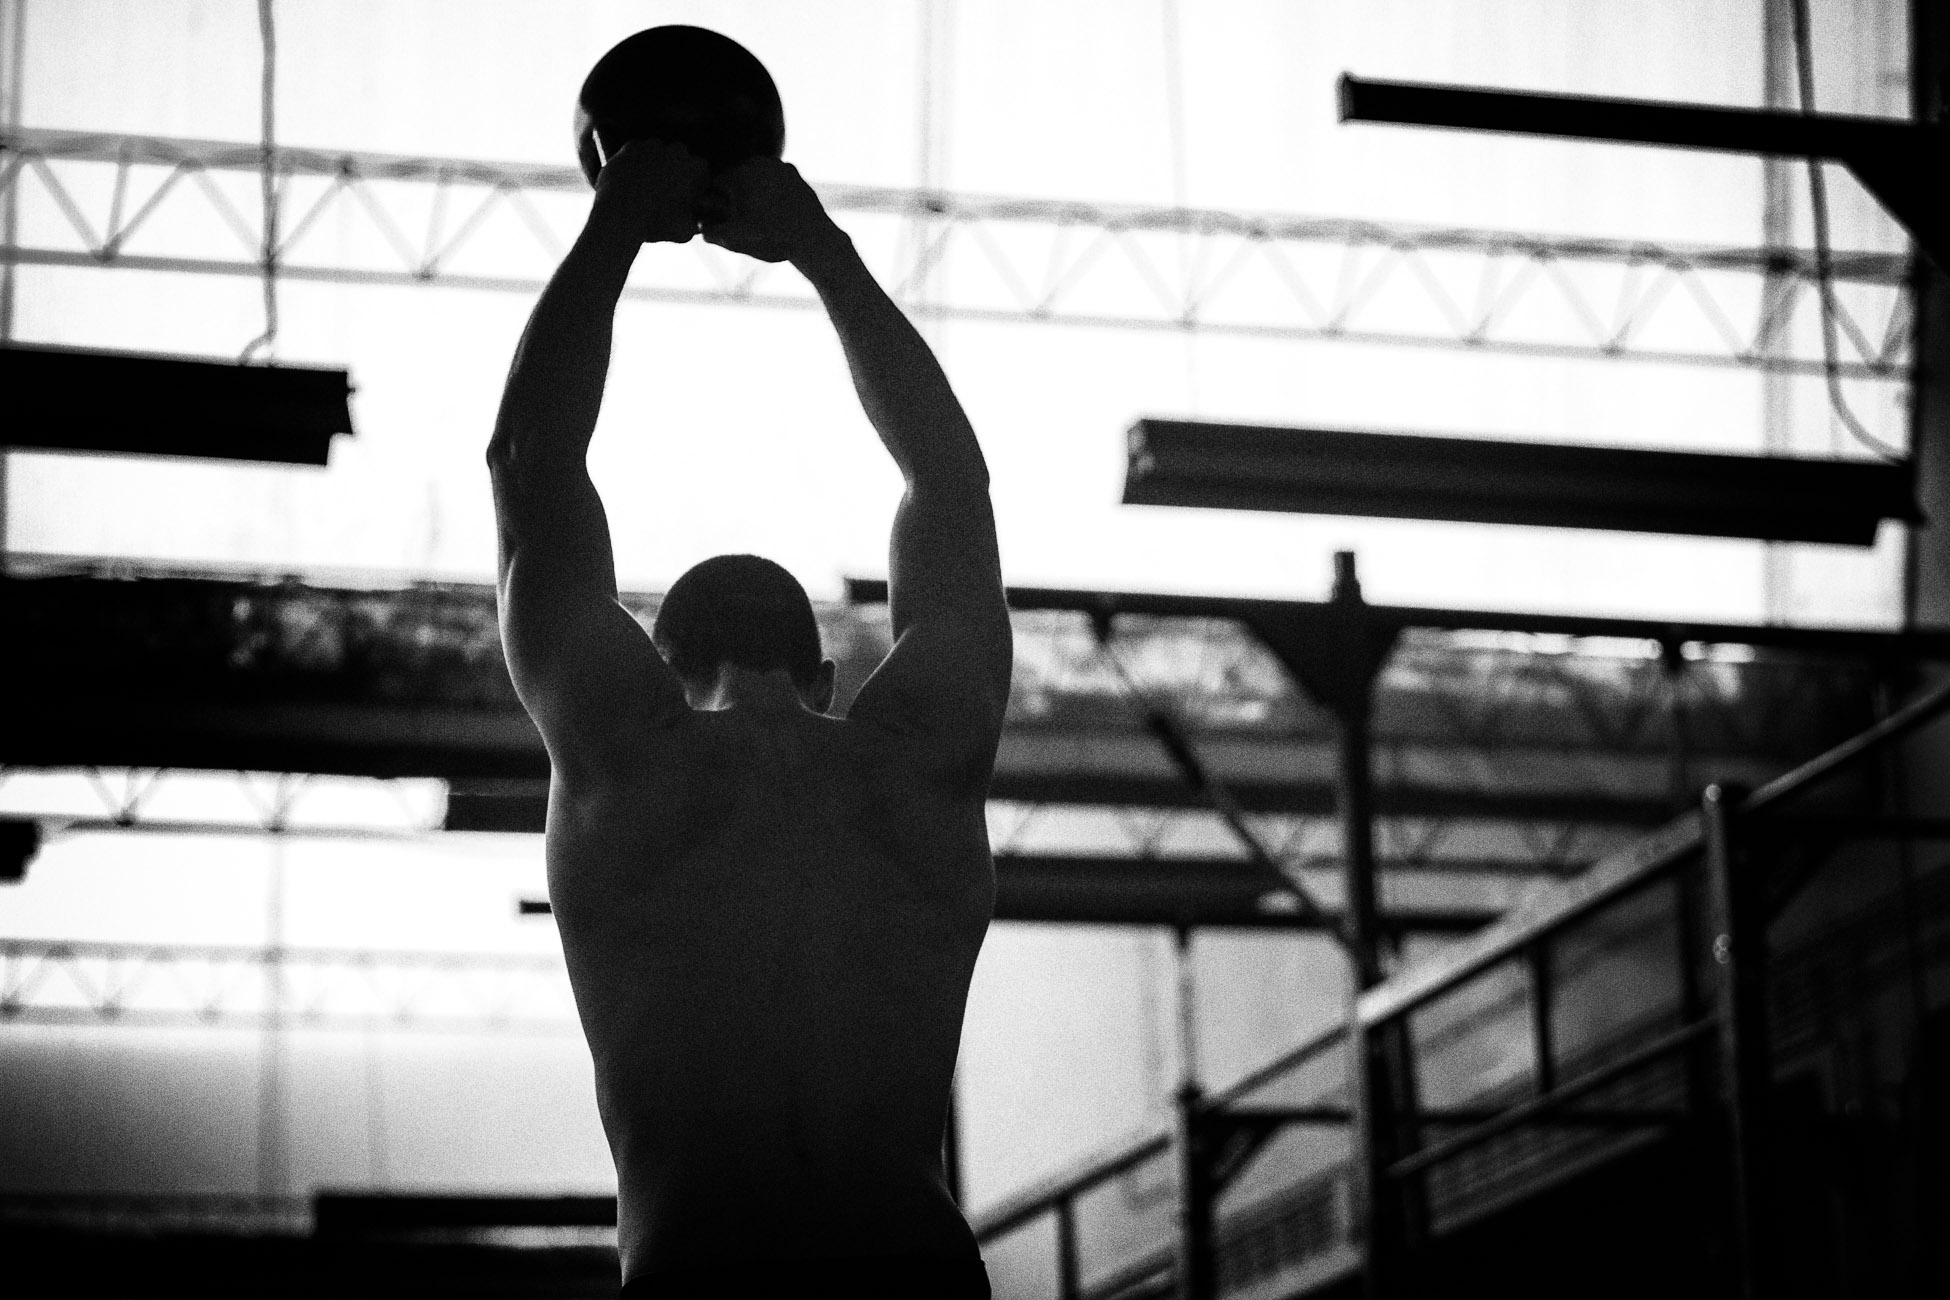 Gonçalo Barriga CrossFit Photographer - Kettlebell swing